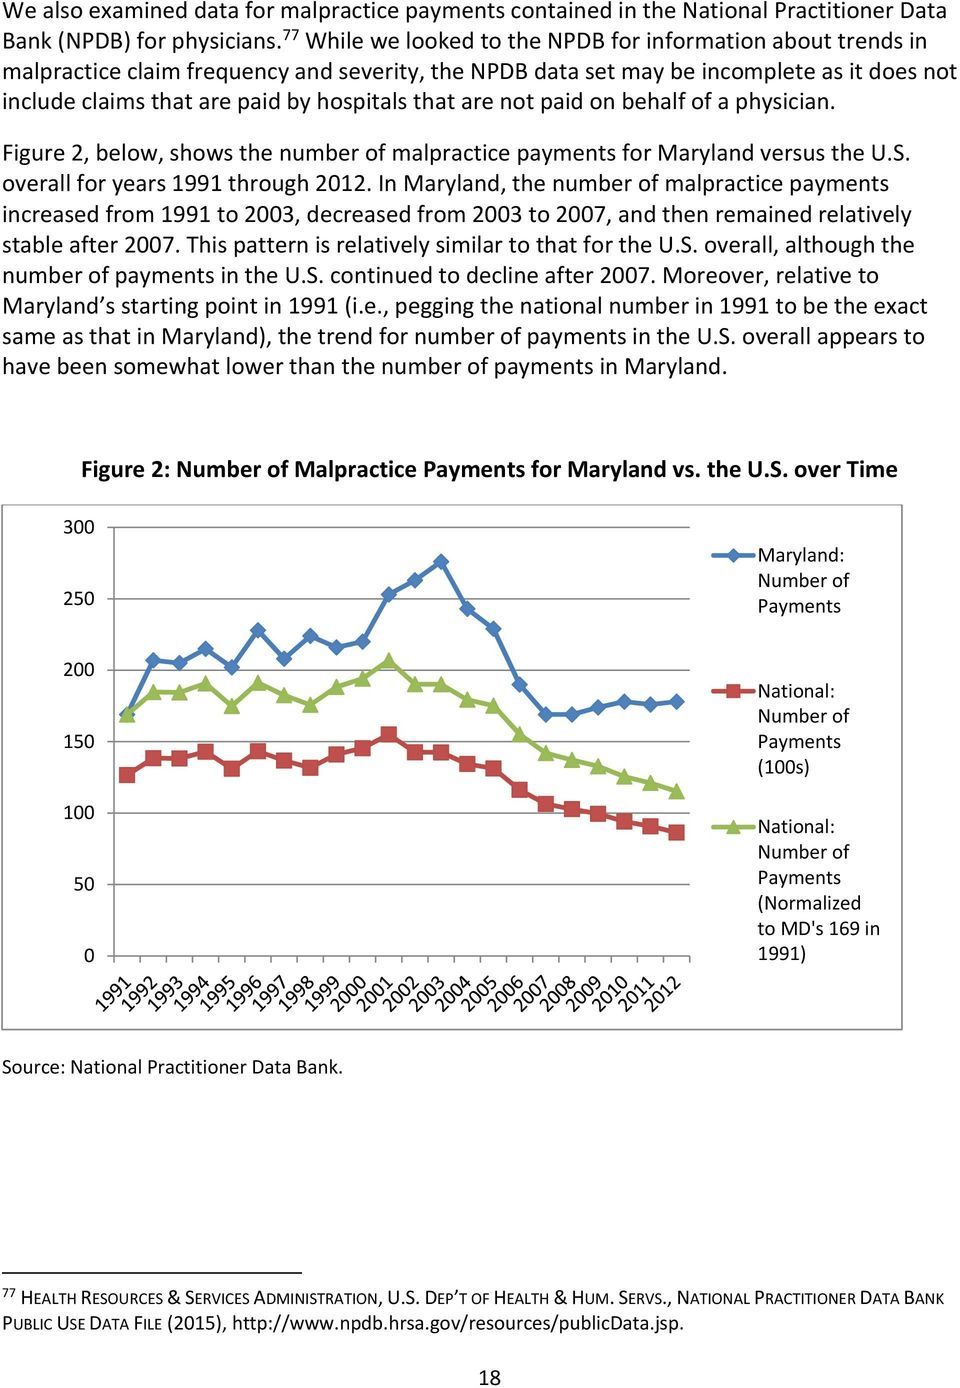 that are not paid on behalf of a physician. Figure 2, below, shows the number of malpractice payments for Maryland versus the U.S. overall for years 1991 through 2012.